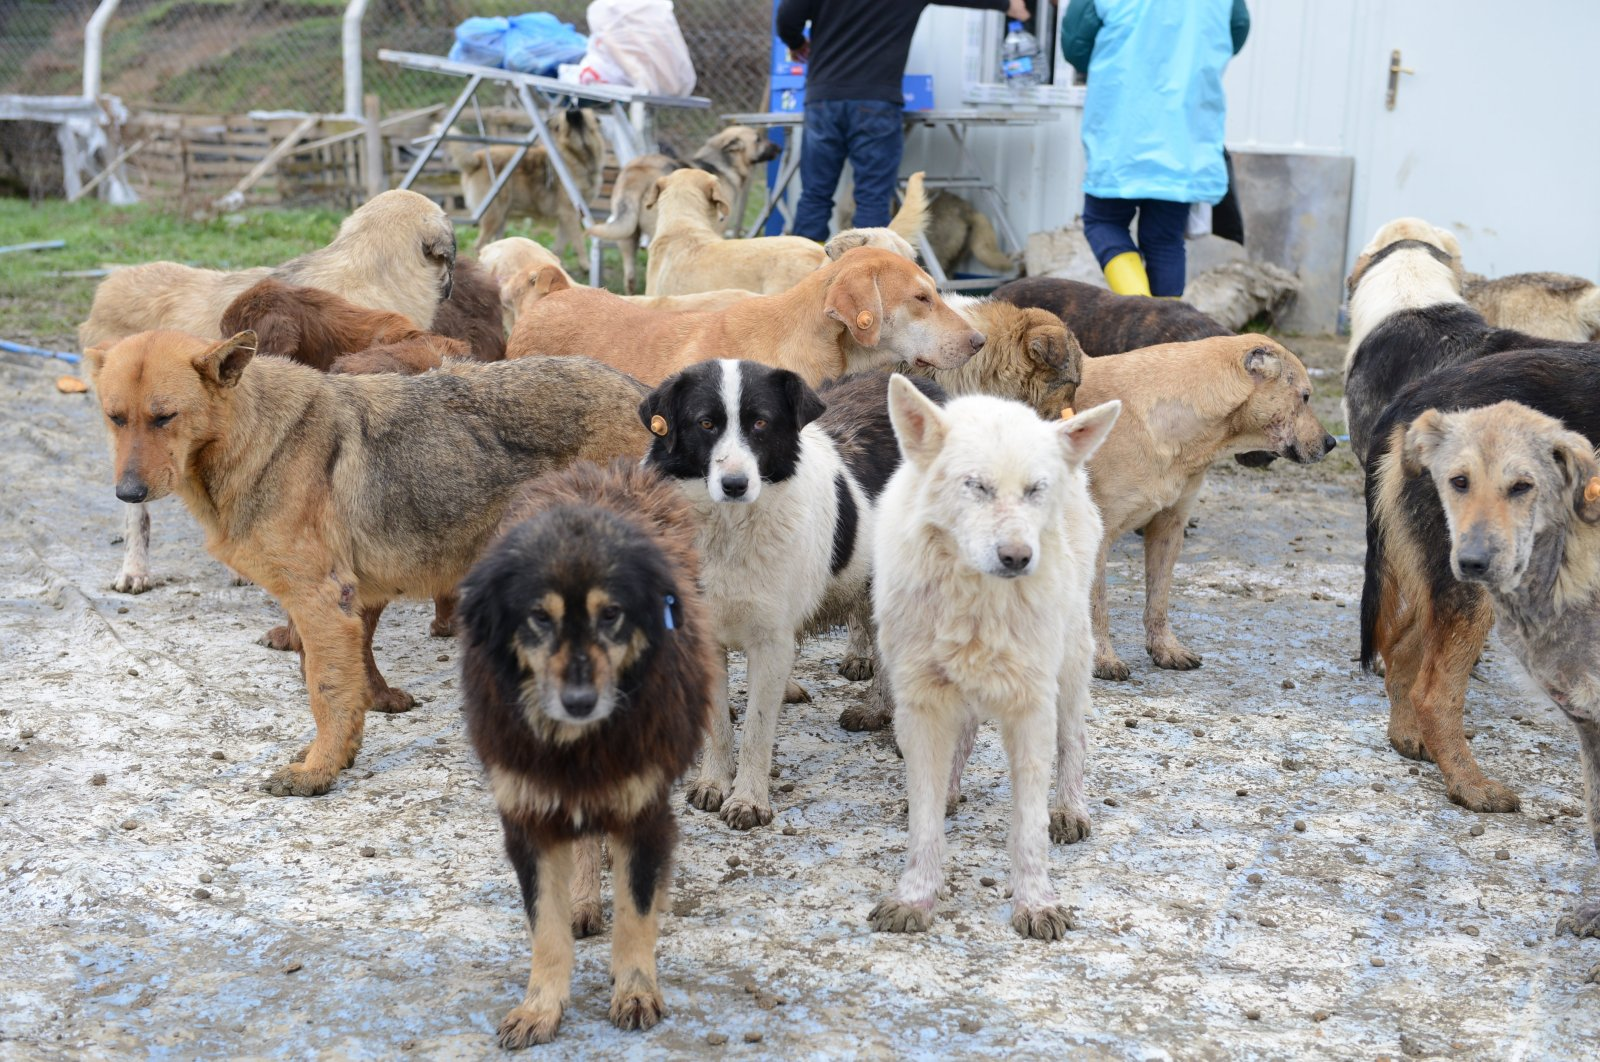 Dogs are pictured at an animal shelter in Istanbul's Beykoz province, July 11, 2018. (Sabah File Photo)